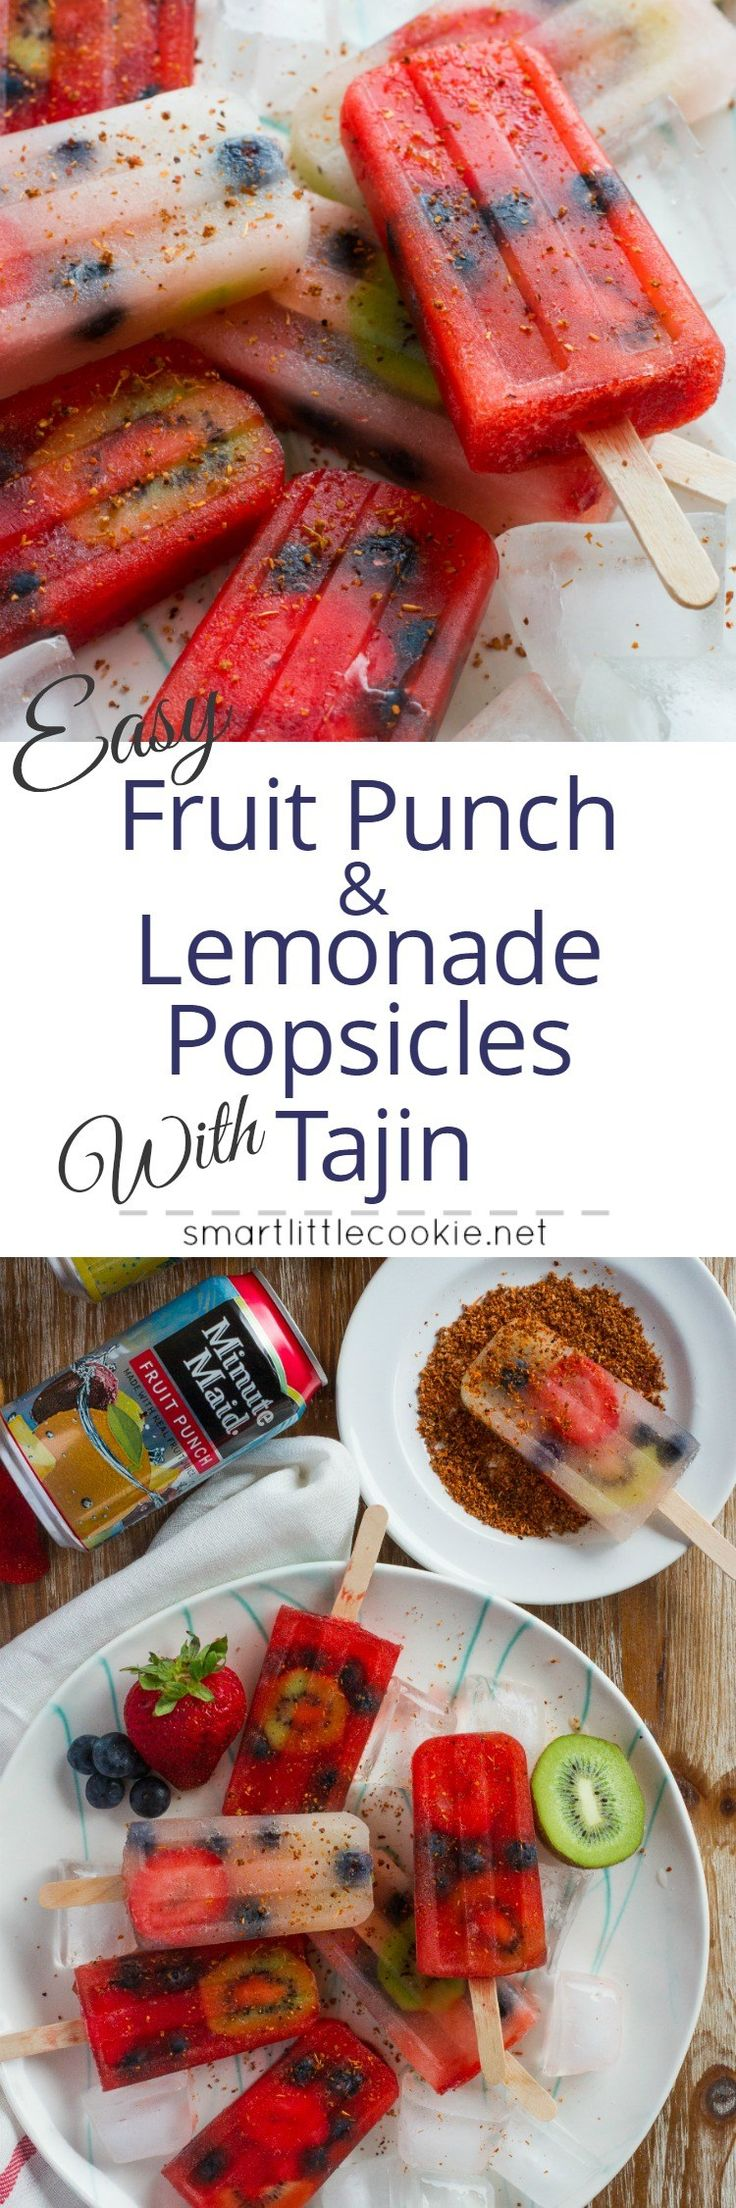 Easy Fruit Punch and Lemonade Popsicles with Tajin ~ Easy and refreshing fruit punch and lemonade popsicles filled with strawberries, blueberries and kiwi and sprinkled with Tajin for added flavor. #RefrescaTuSummer #ad